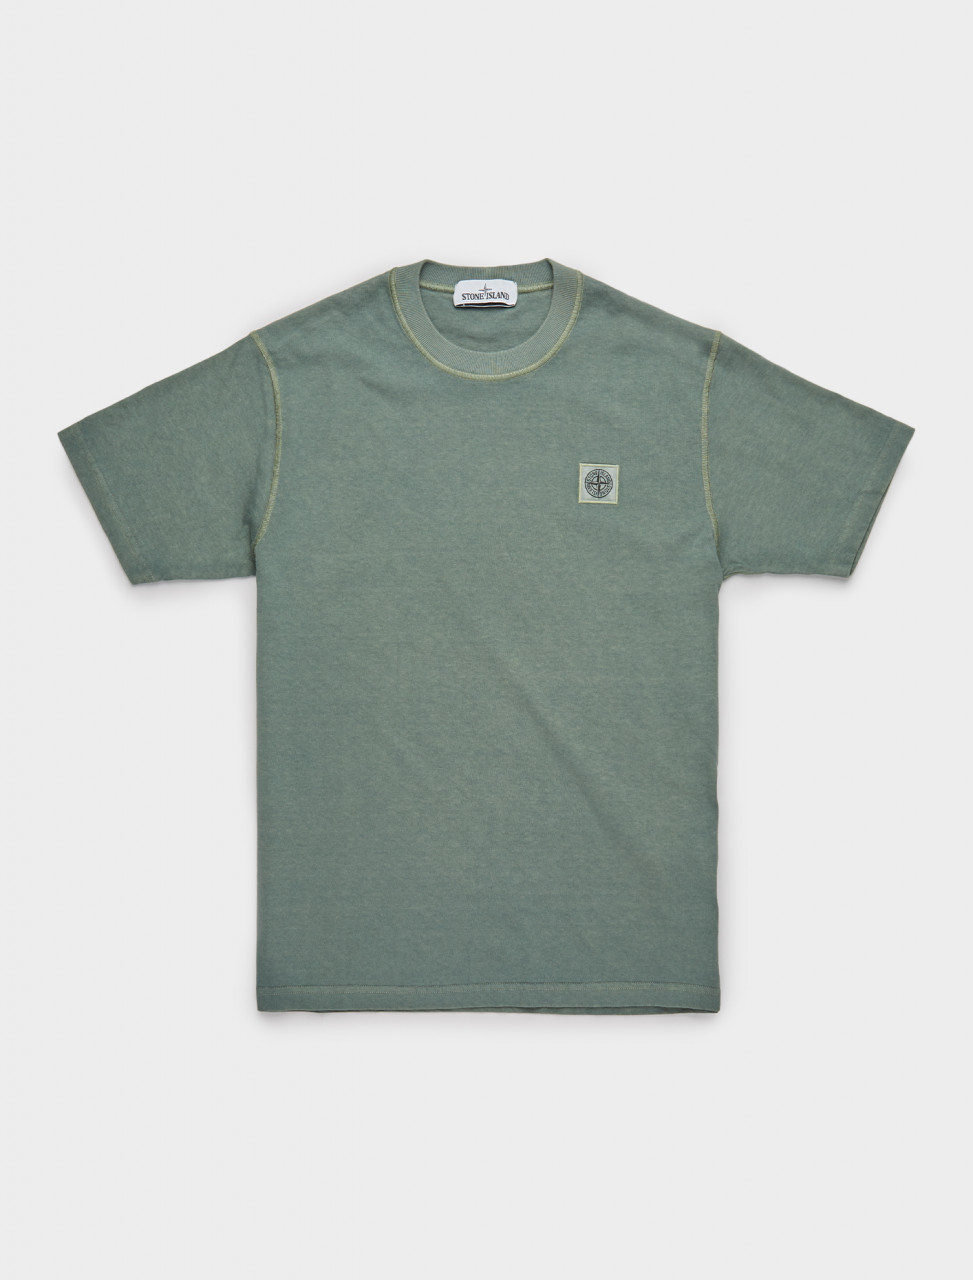 241-MO731523742-V0155 STONE ISLAND LOGO PATCH T-SHIRT IN GREEN